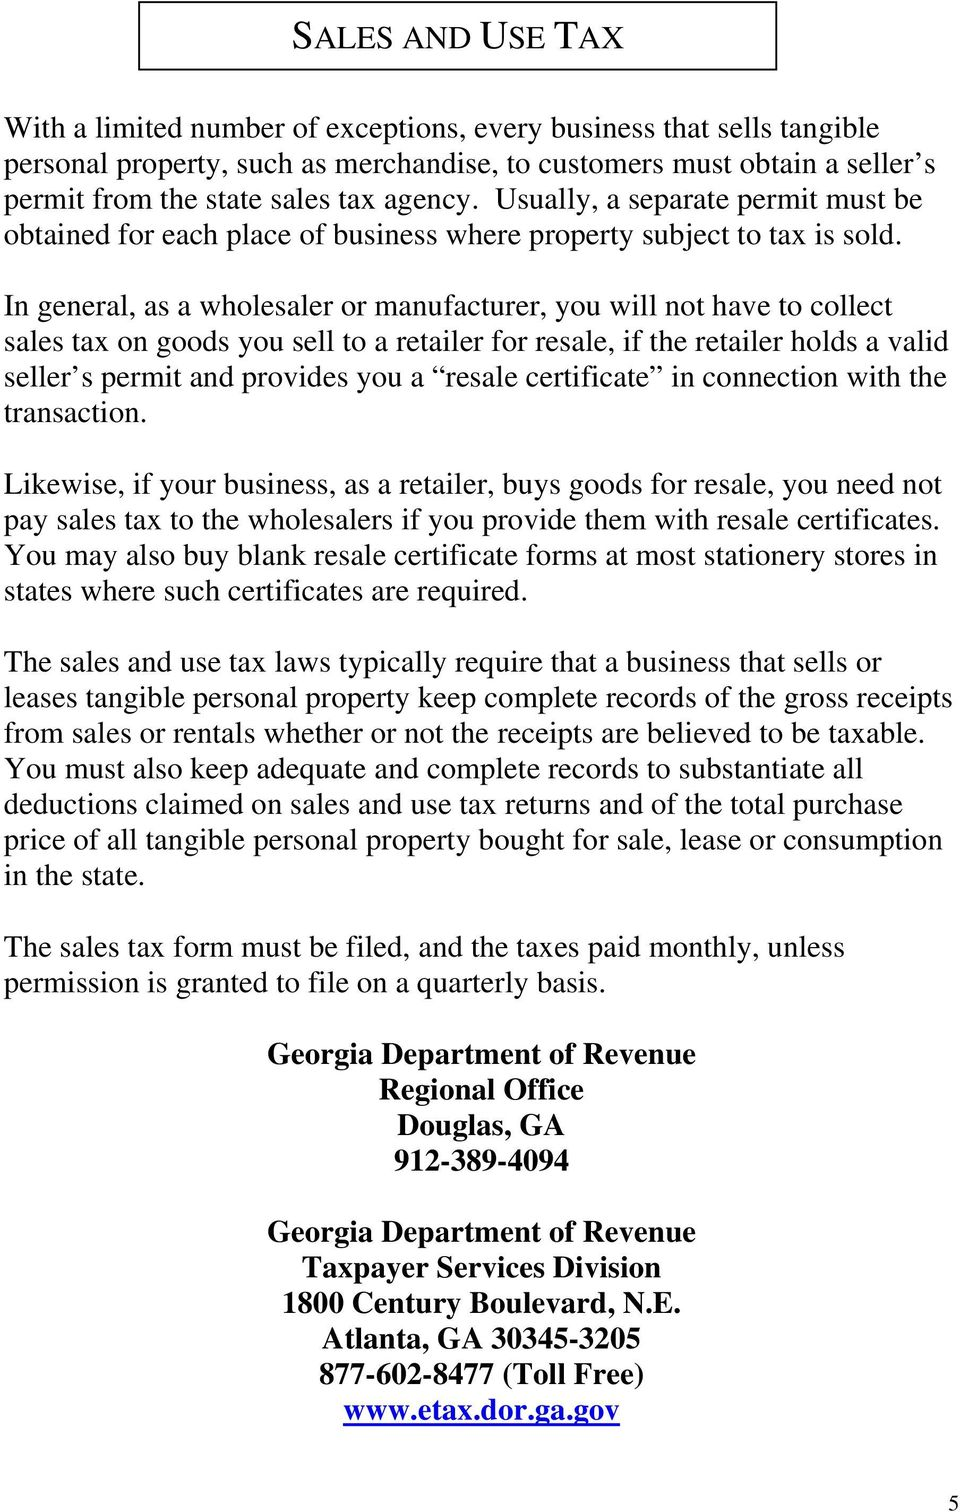 Lowndes County Licensing And Tax Guide Pdf